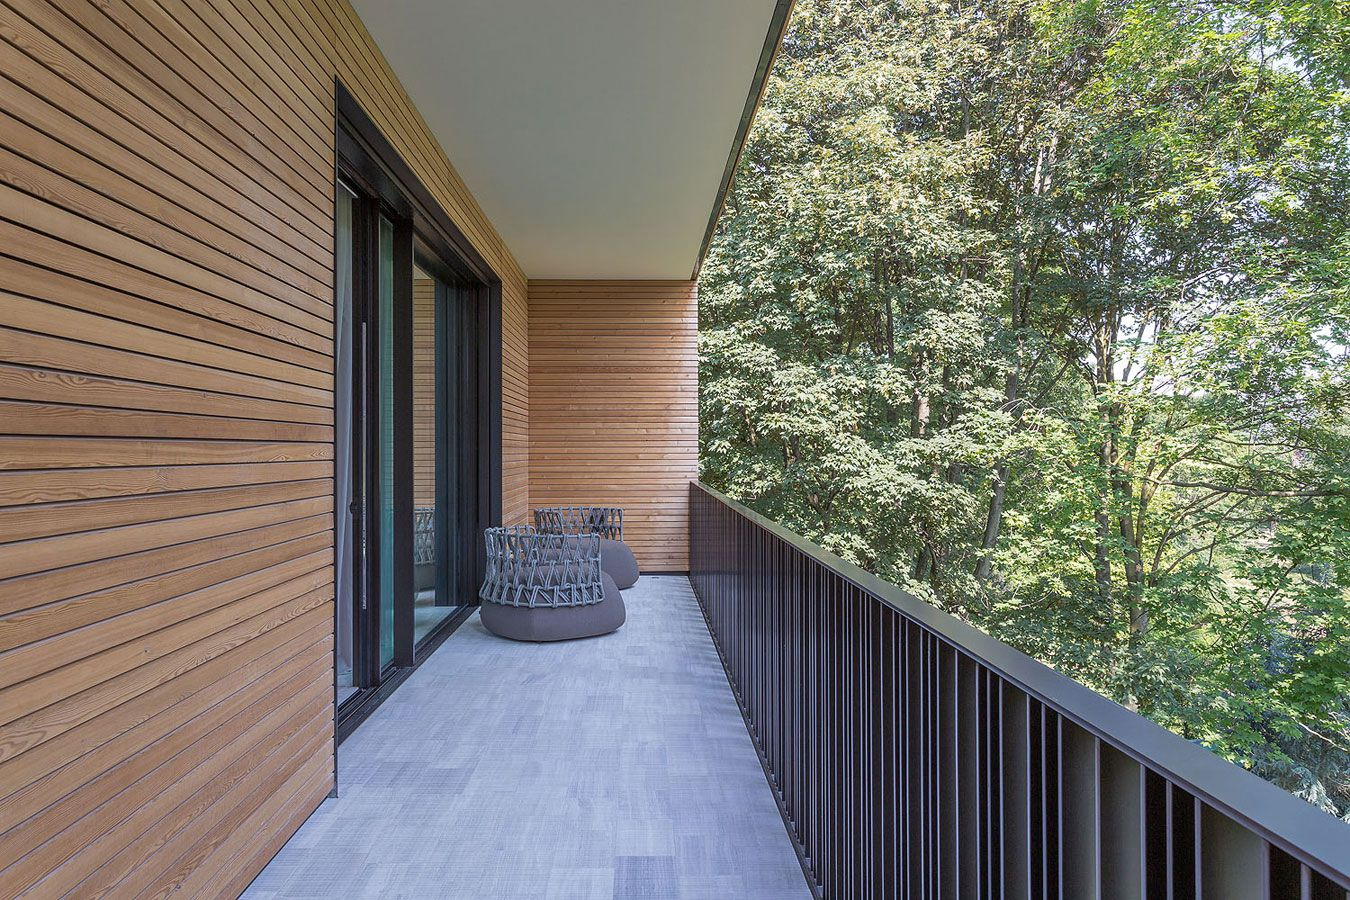 modern architecture emphasizing wooden design balcony